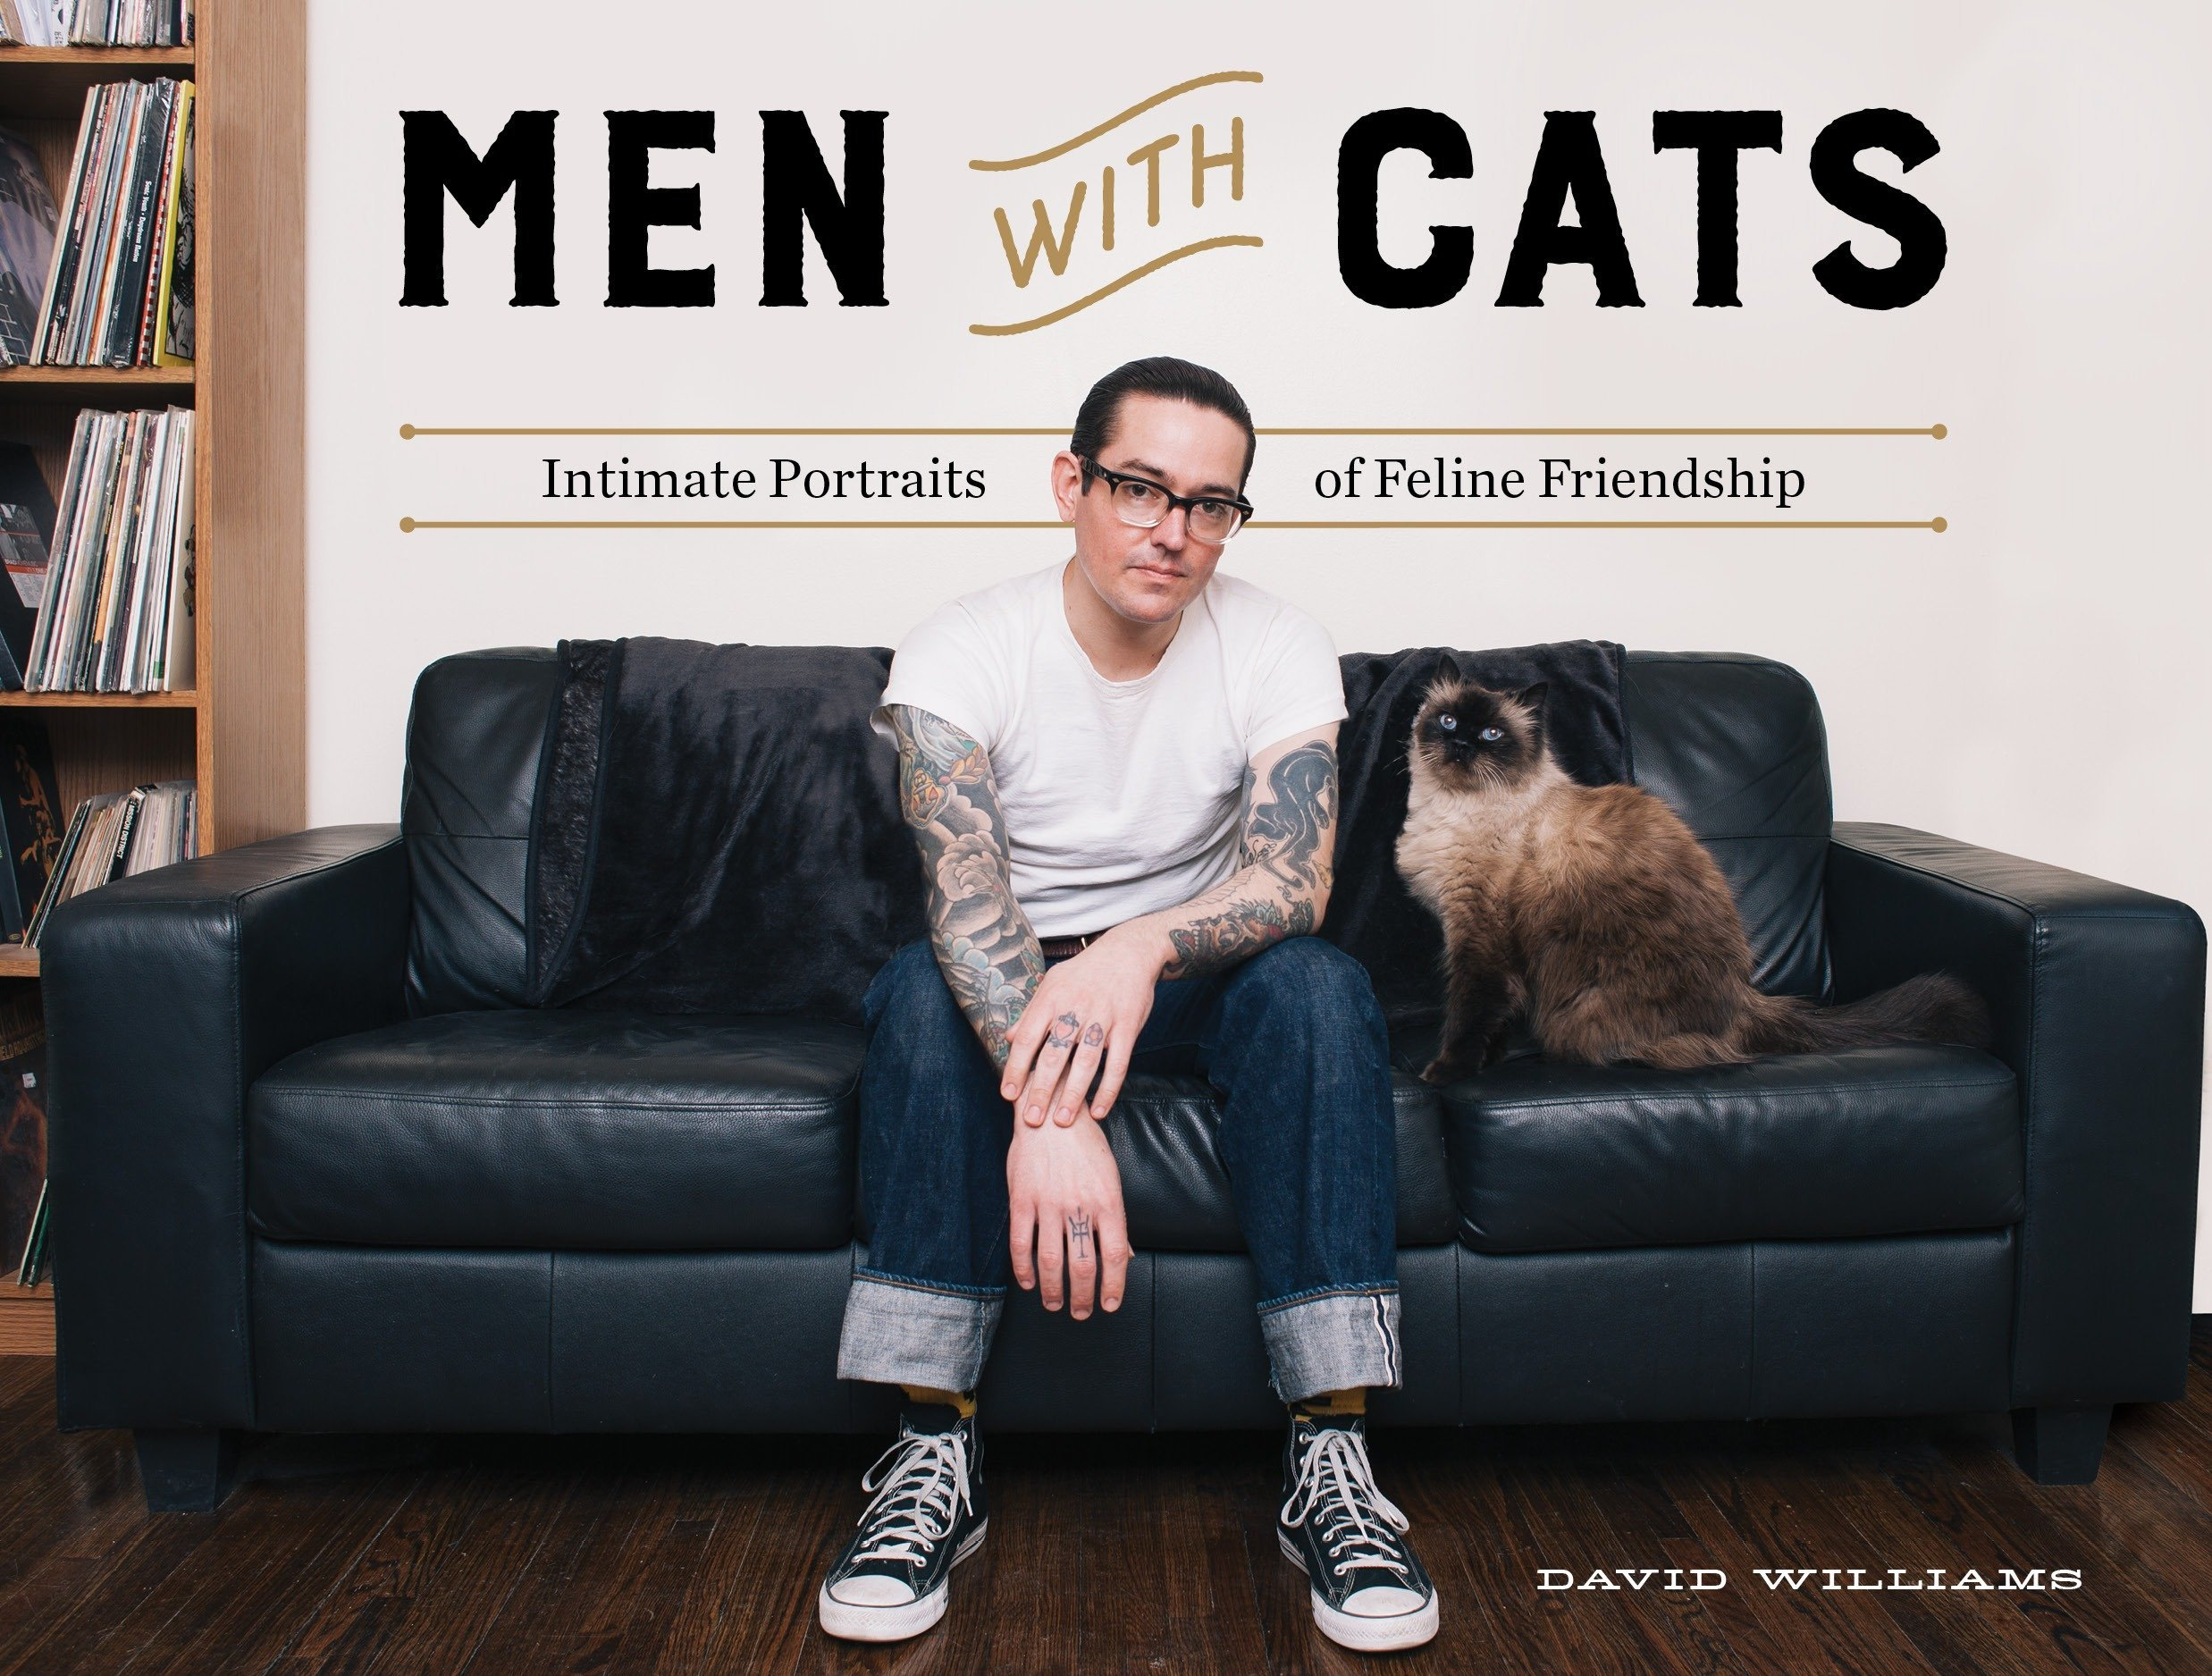 Men with cats : intimate portraits of feline friendship